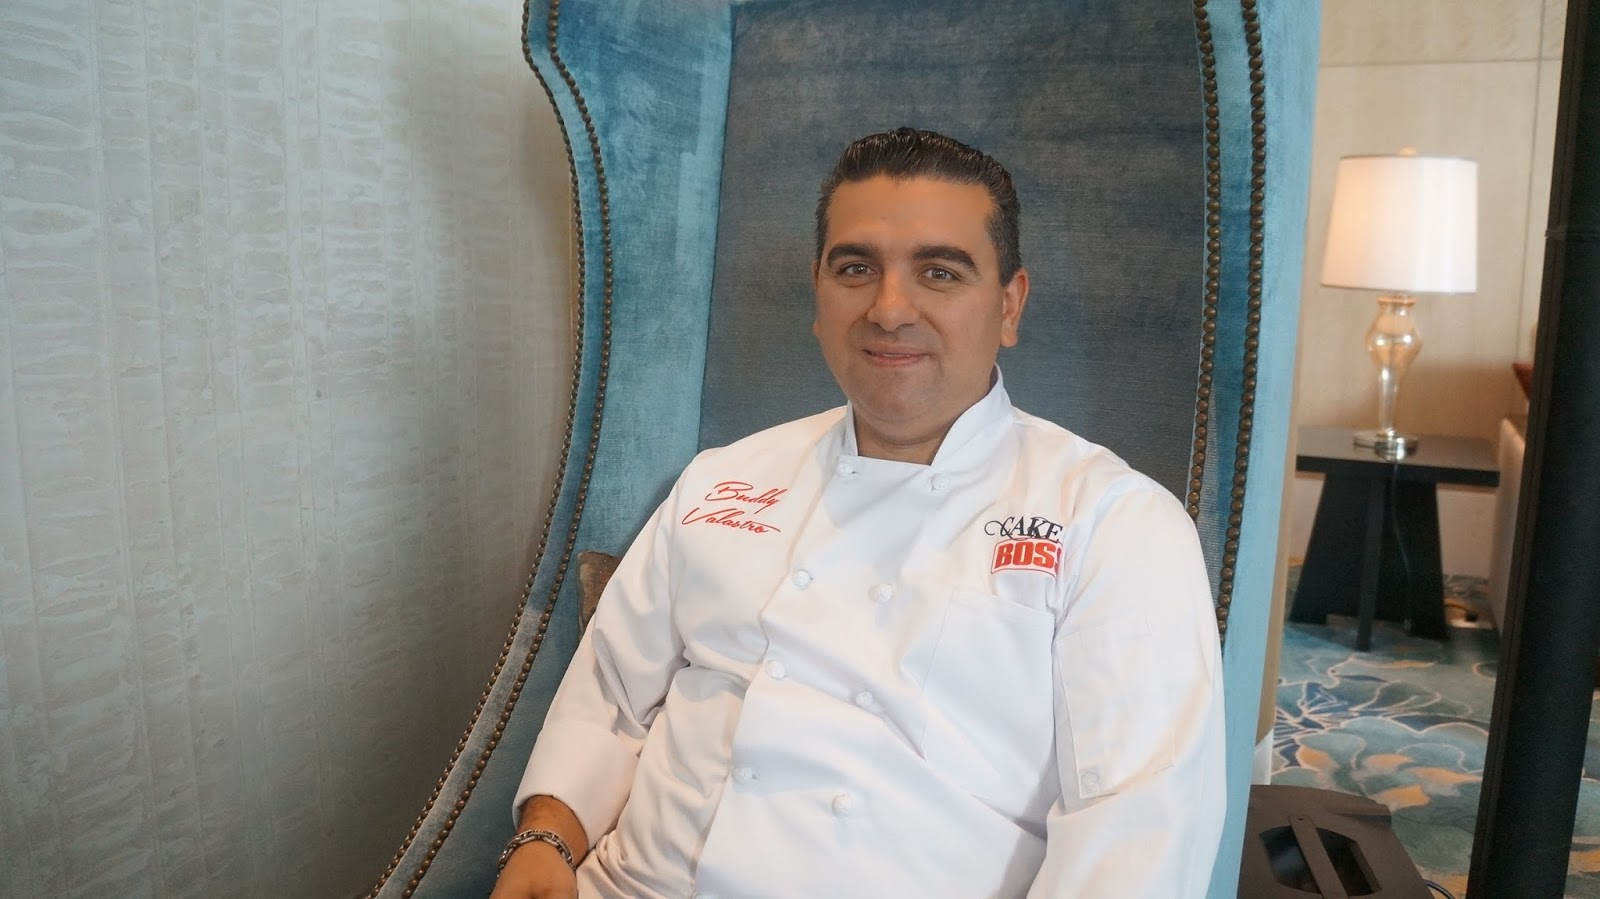 Exclusive Interview with Buddy Valastro aka Cake Boss of TLC